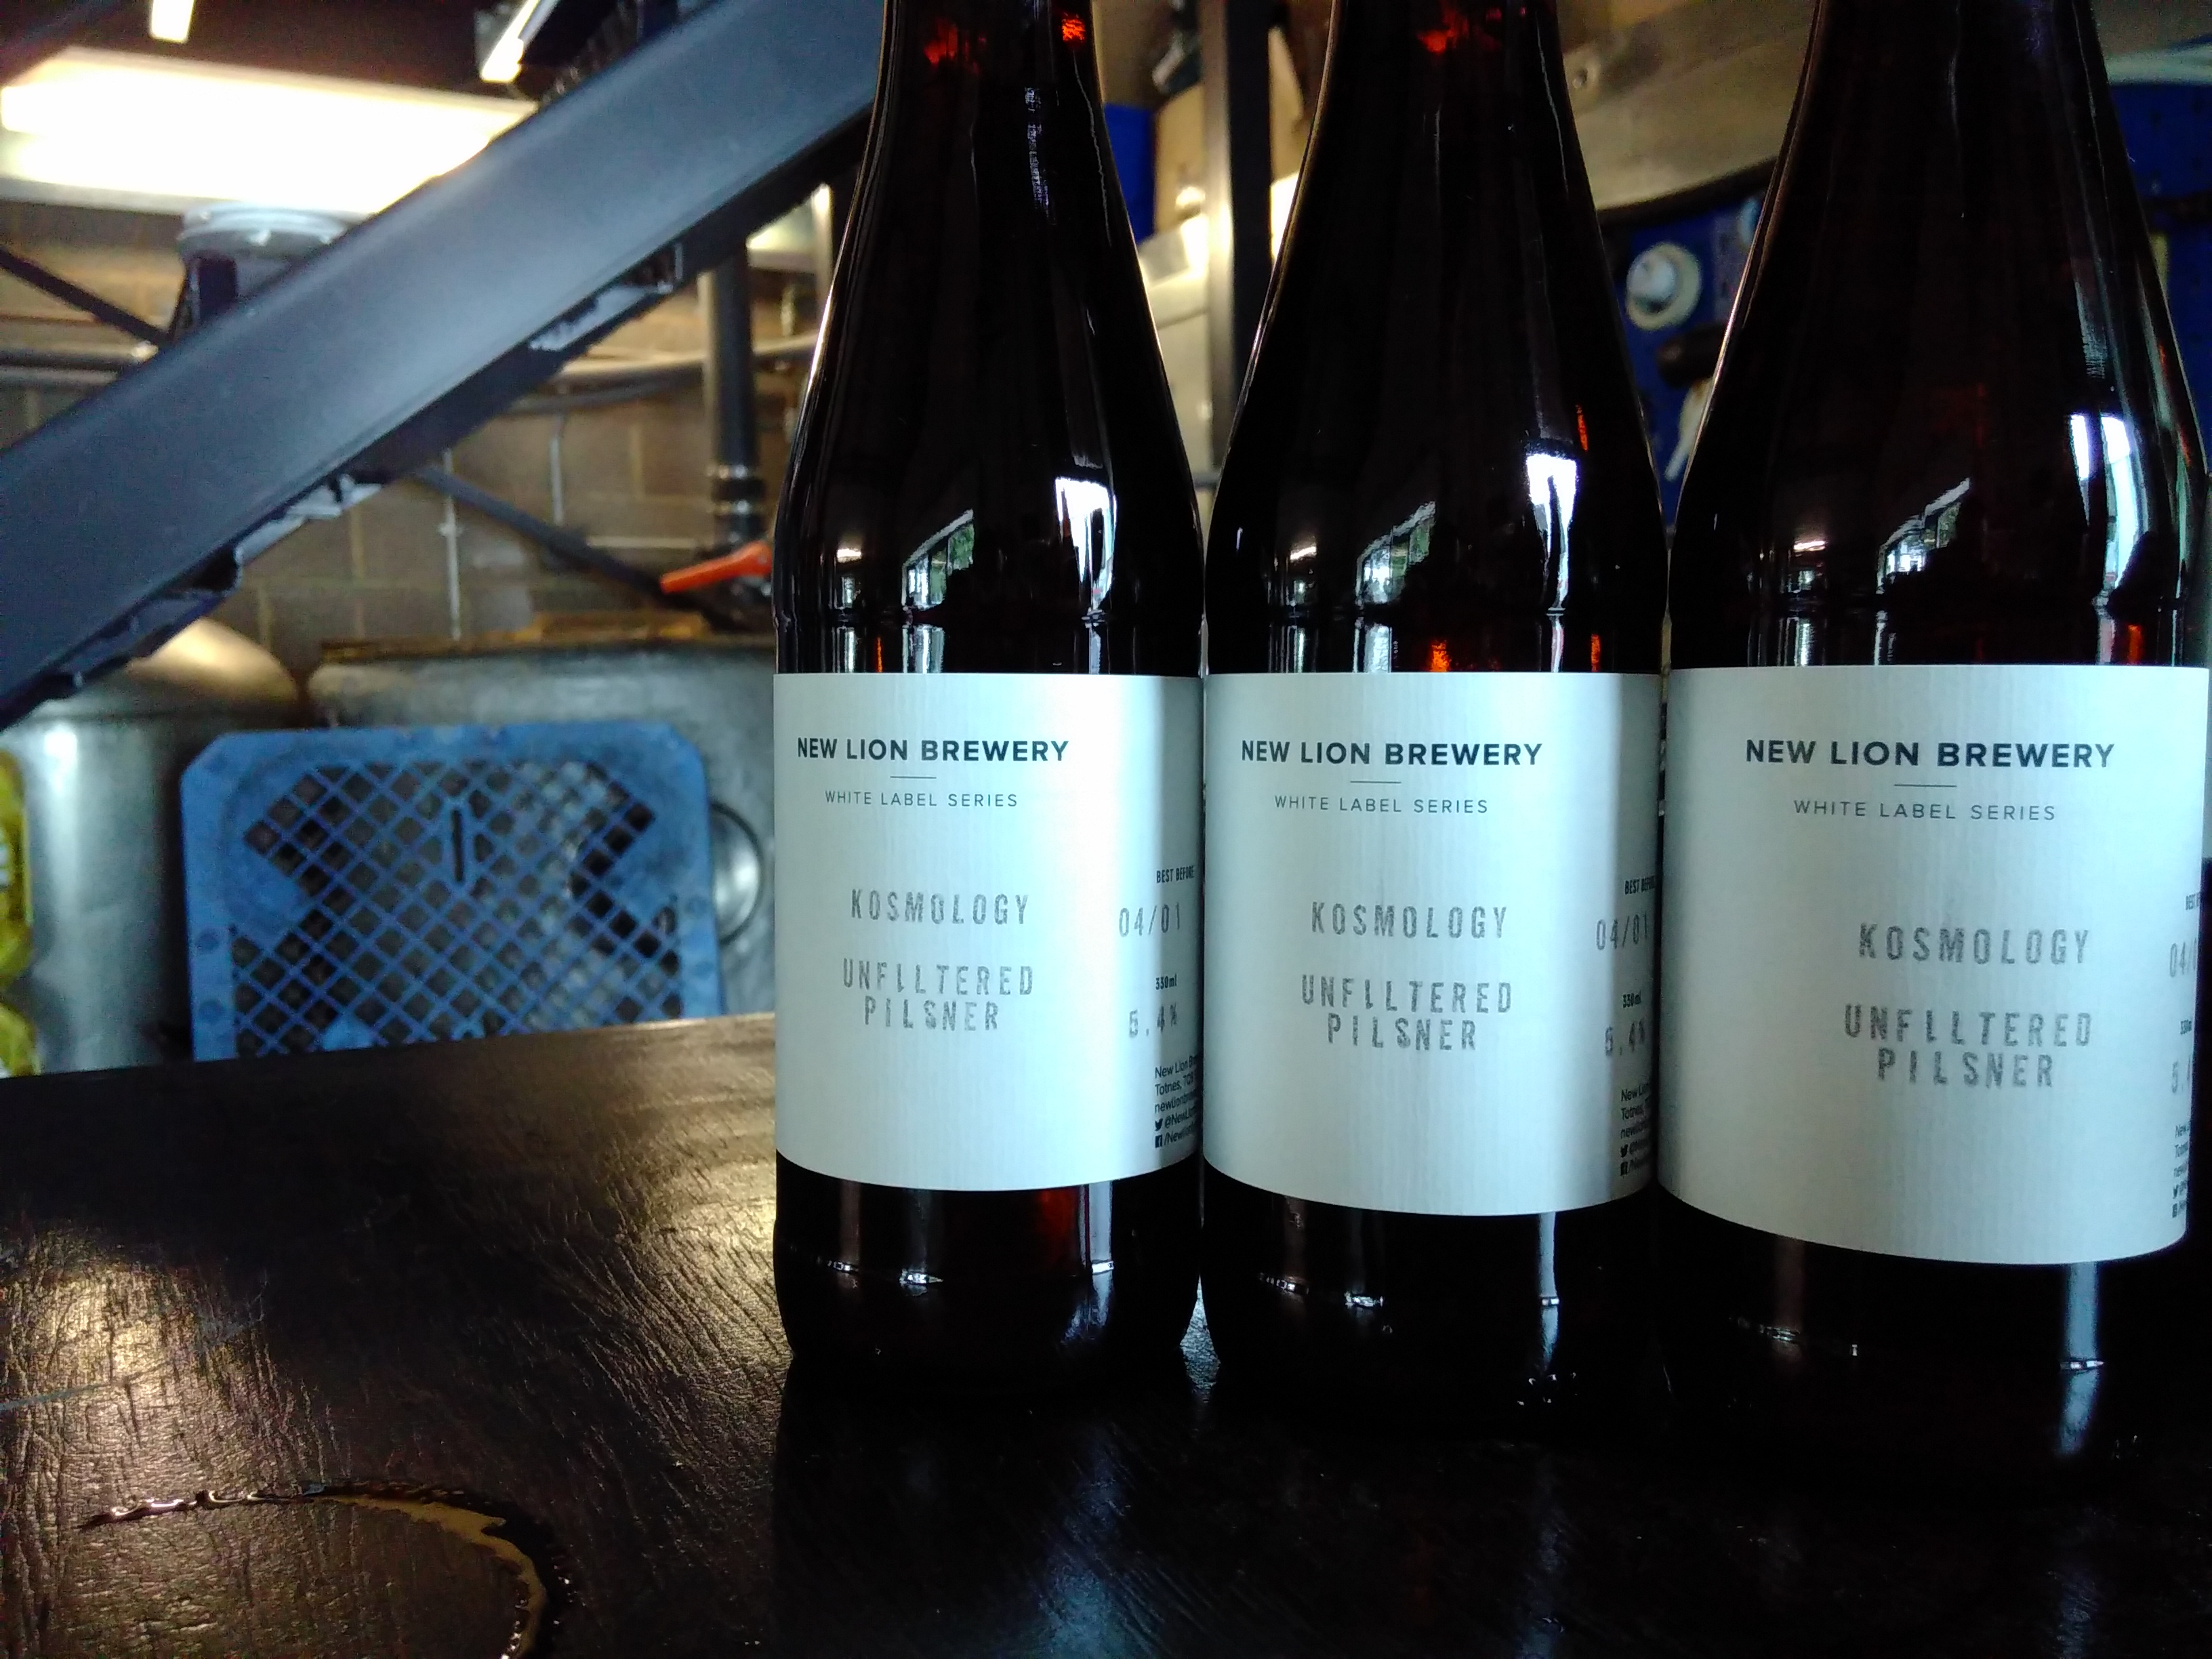 New Lion Brewery – White Label Series